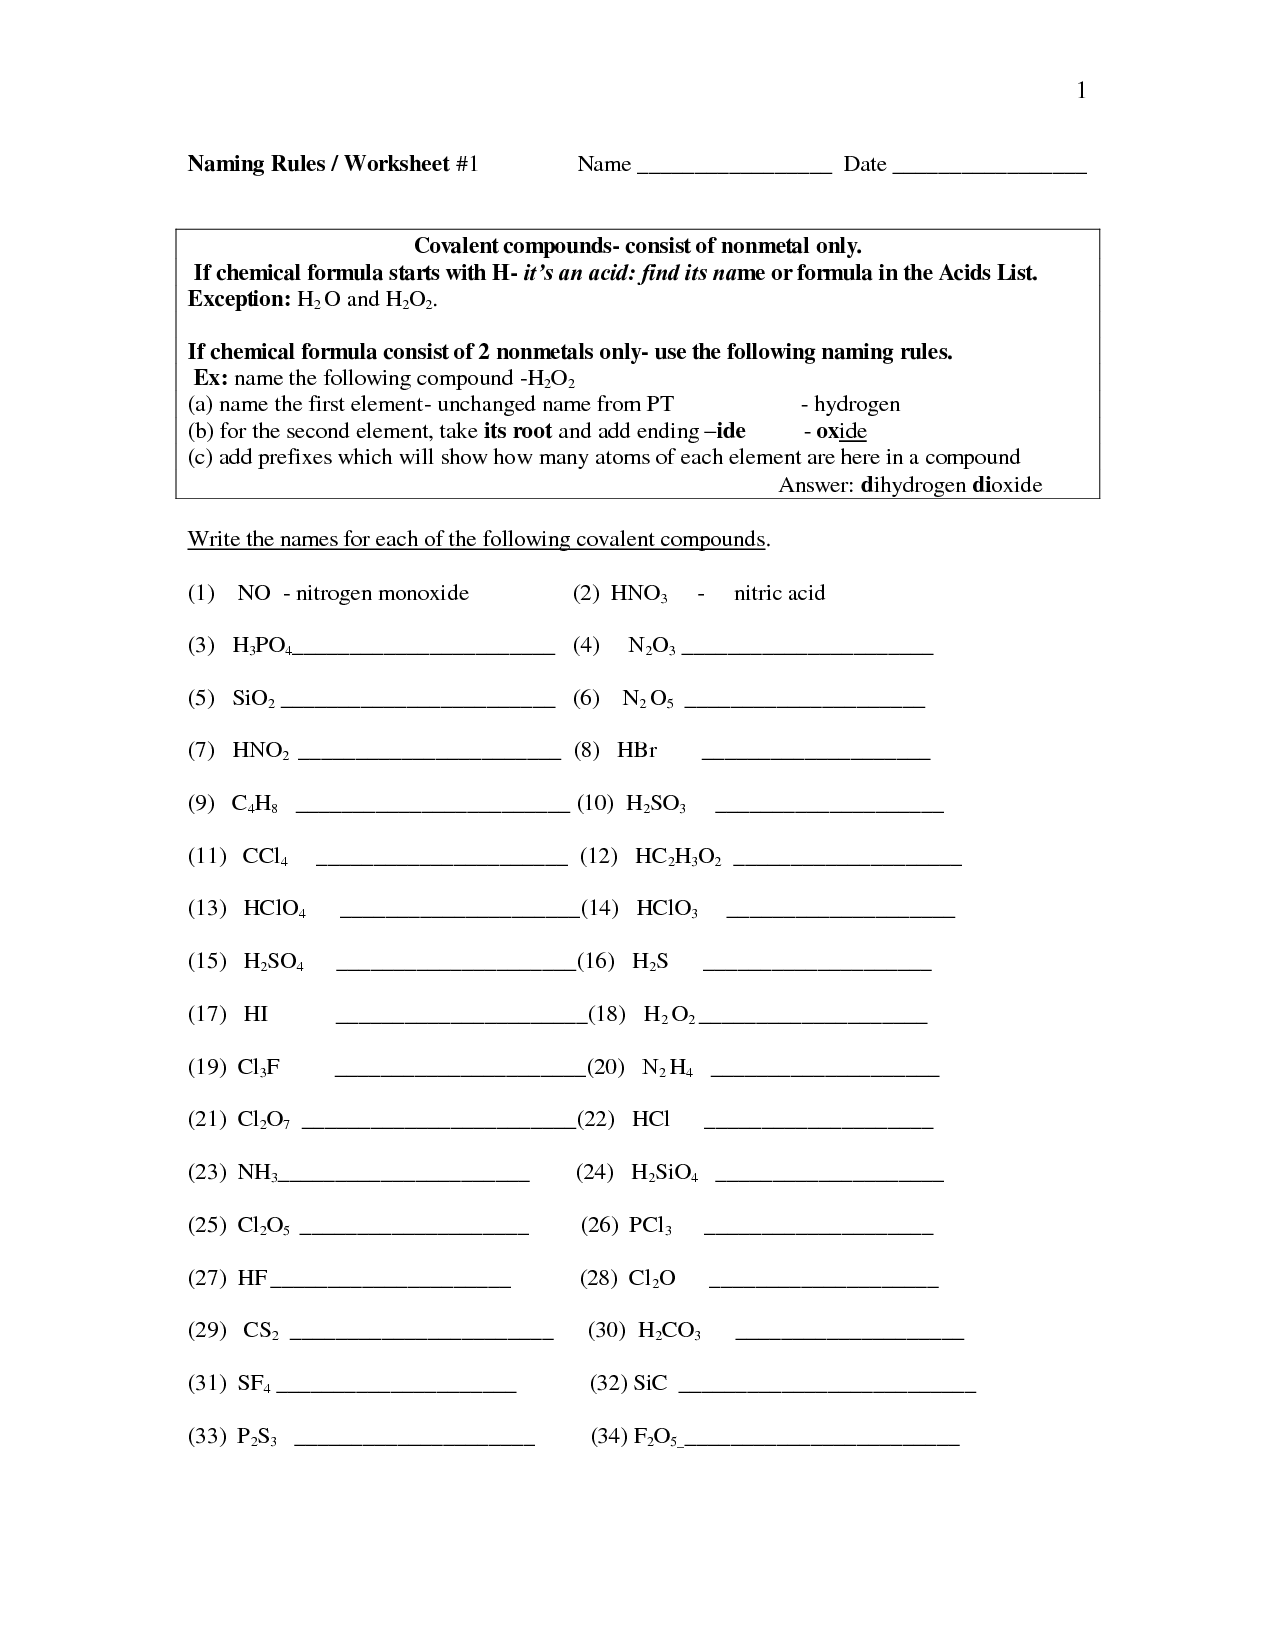 Naming Organic Compounds Worksheet